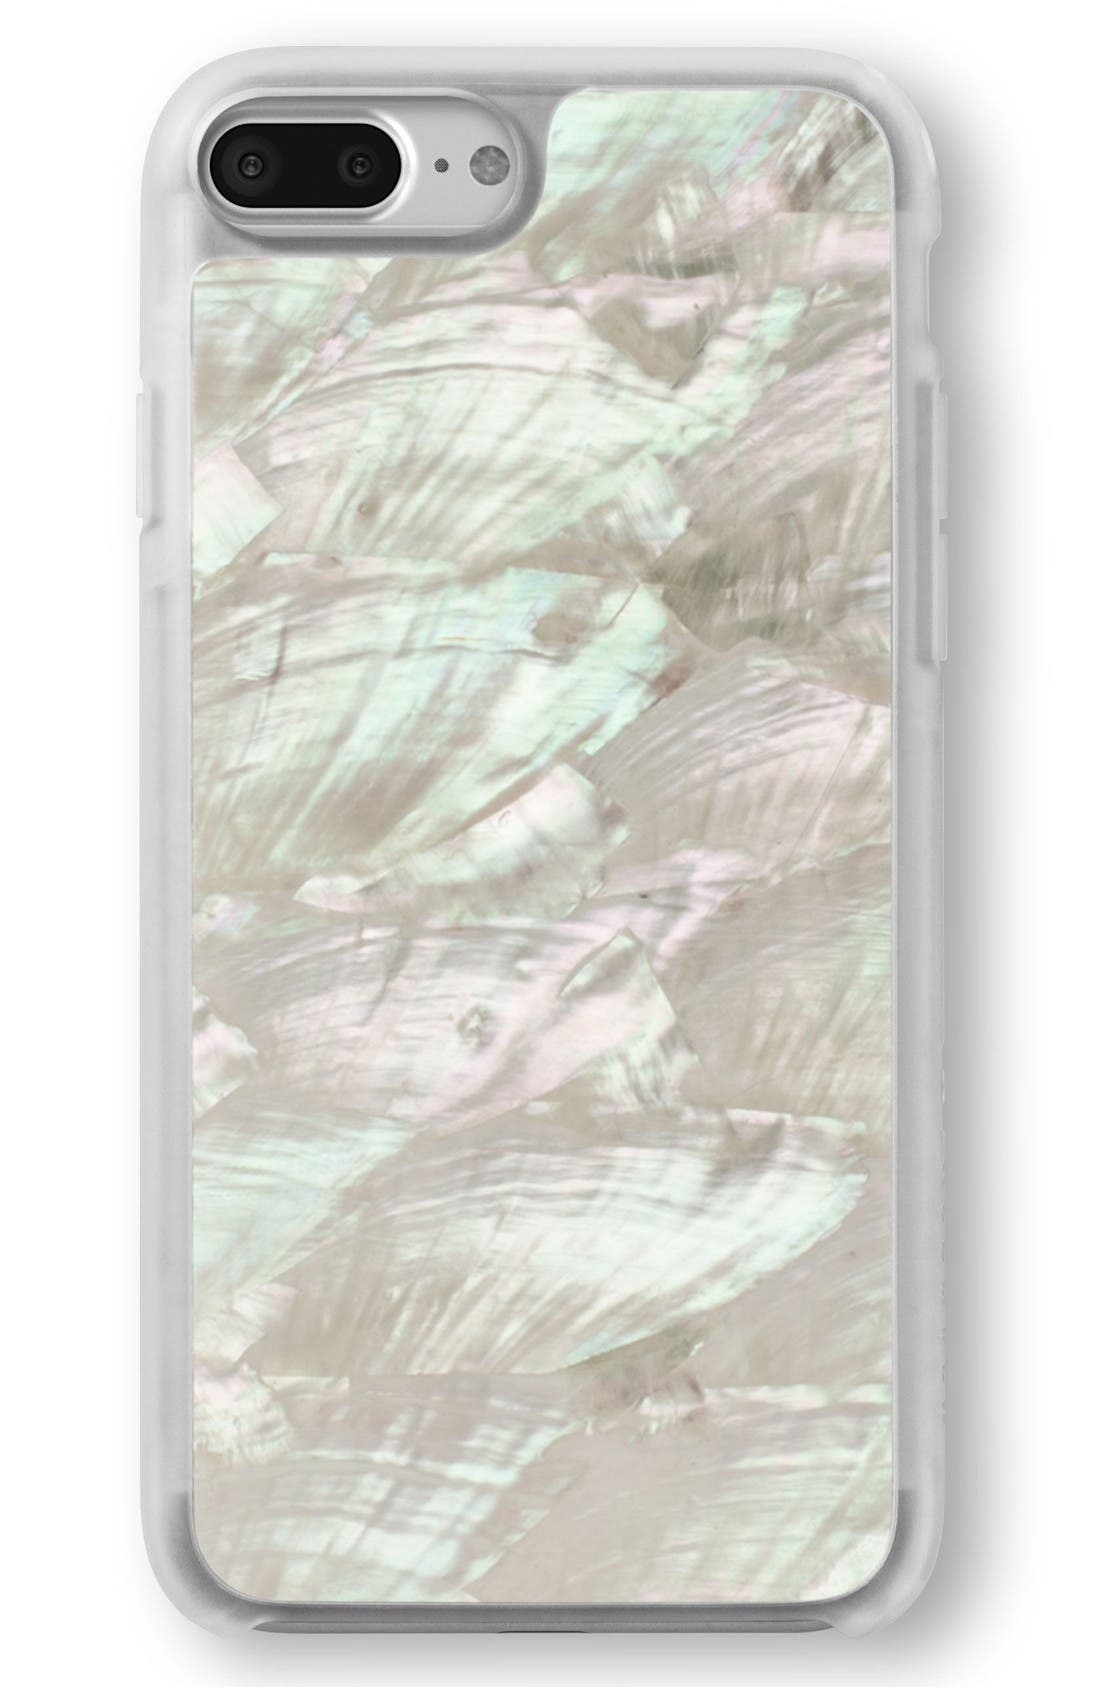 Main Image - Recover White Abalone iPhone 6/6s/7/8 & 6/6s/7/8 Plus Case